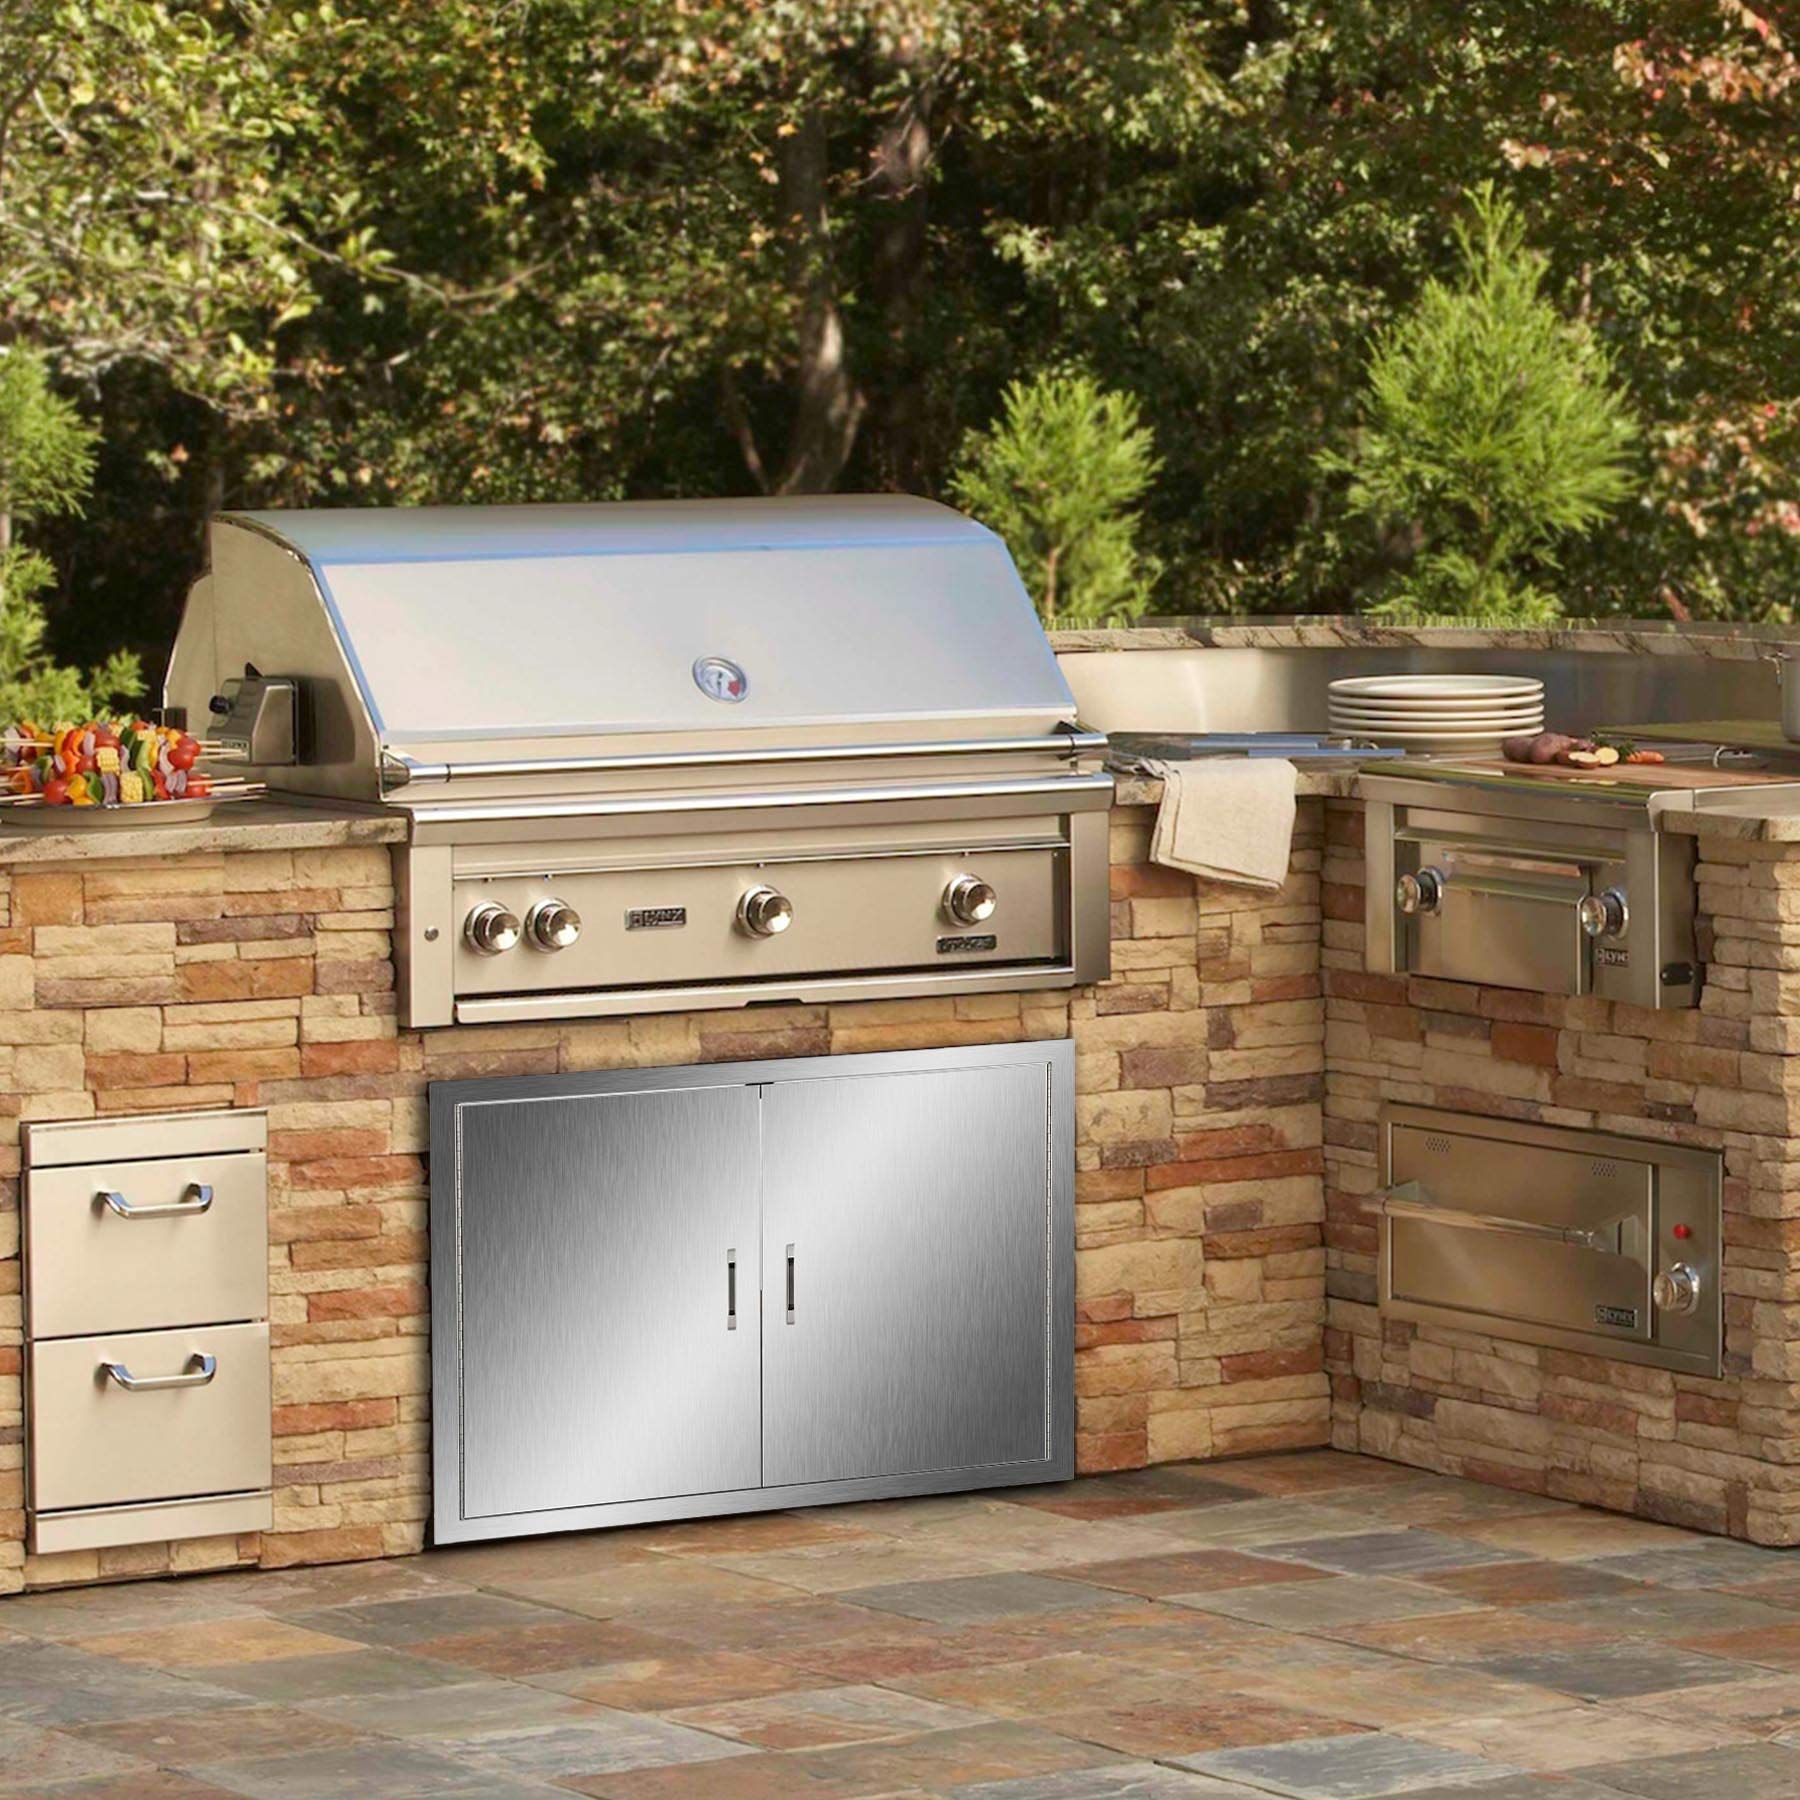 CO-Z Outdoor Kitchen Doors, 304 Brushed Stainless Steel Double BBQ Access Doors for Outdoor Kitchen, Commercial BBQ Island, Grilling Station, Outside Cabinet, Barbeque Grill, Built-in (31'' W x 24'' H) by CO-Z (Image #2)